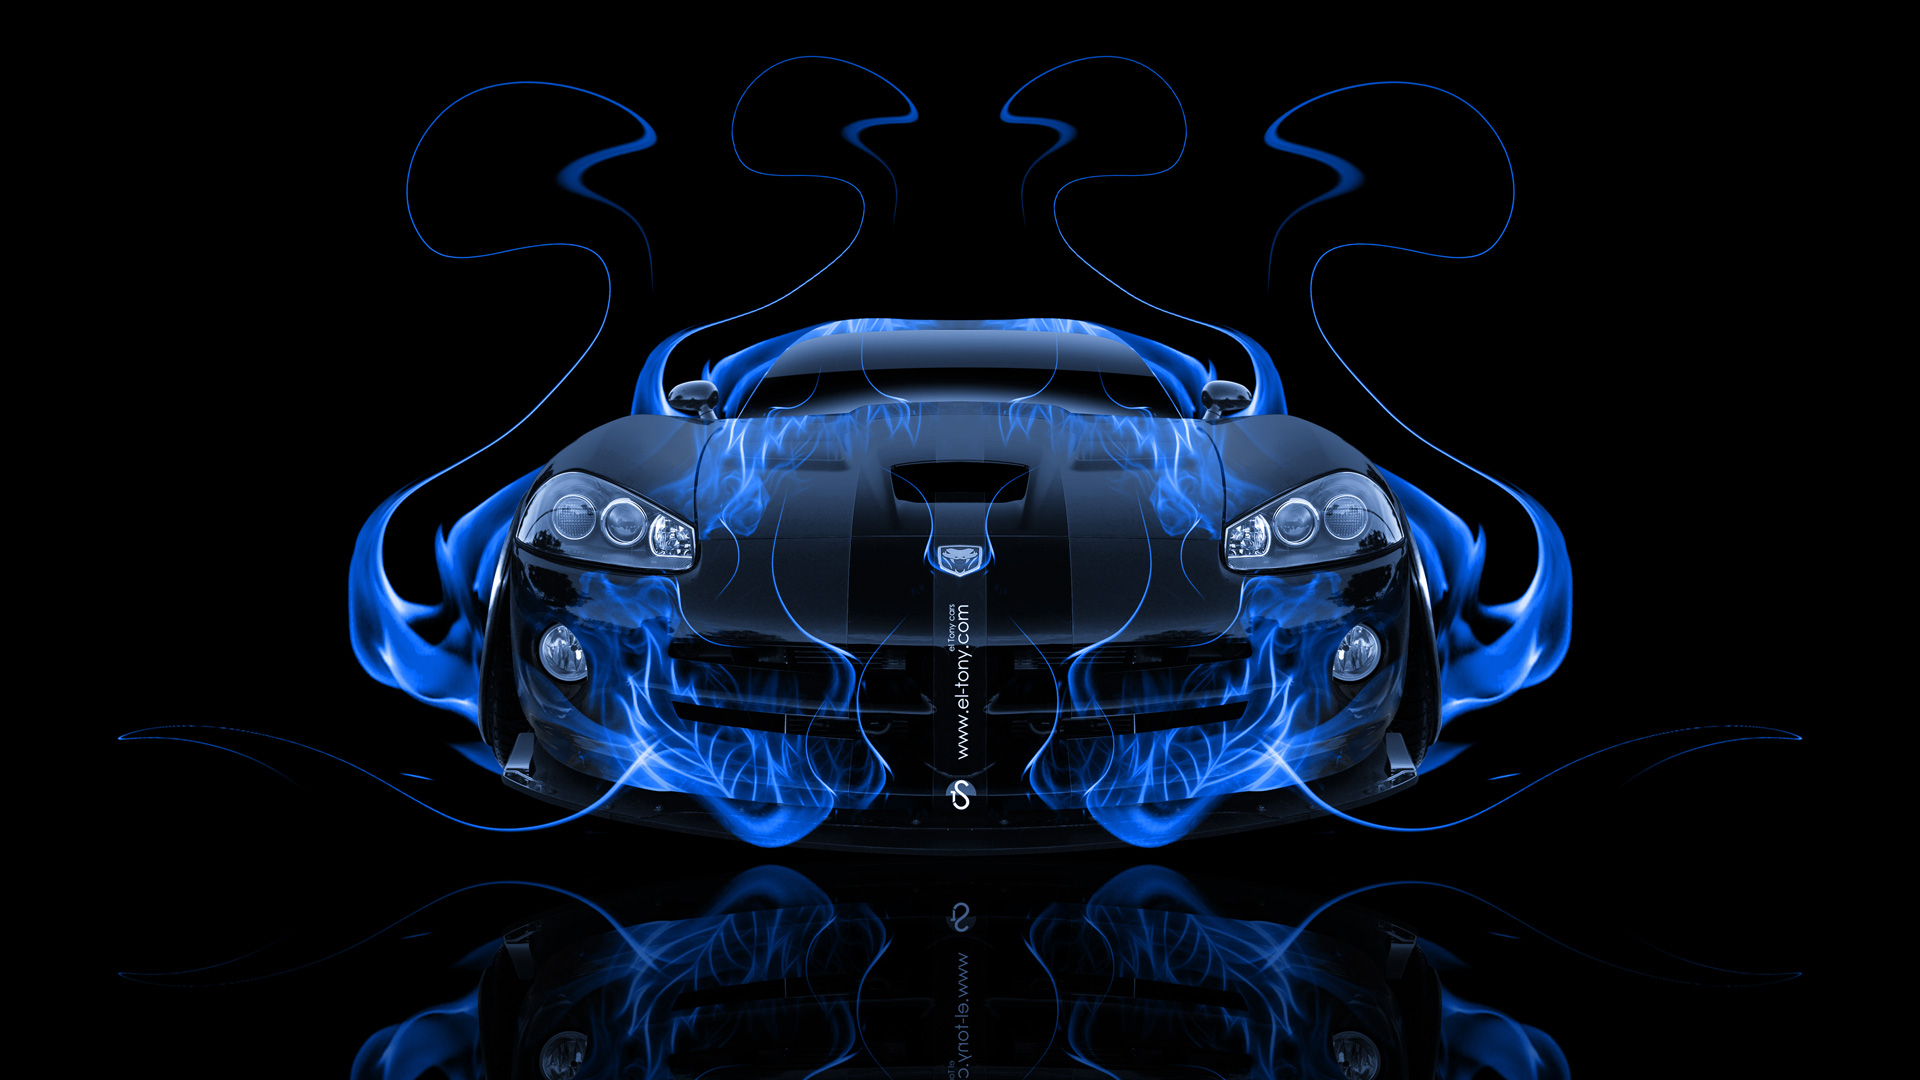 koenigsegg regera specification with Wallpapers Dodge Viper Srt Front Fire Abstract Car 2014 on 4k Wallpapers Ferrari F80 Side Crystal City Car 2014 in addition Wallpapers Dodge Viper Srt Front Fire Abstract Car 2014 additionally Wallpapers Chevrolet Camaro Z28 Muscle Front Fire Car 2014 in addition Wallpapers Volkswagen Golf R Front Fire Abstract Car 2014 additionally 4k Wallpapers Chevrolet Camaro Muscle Side Kiwi Aerography Car 2014.